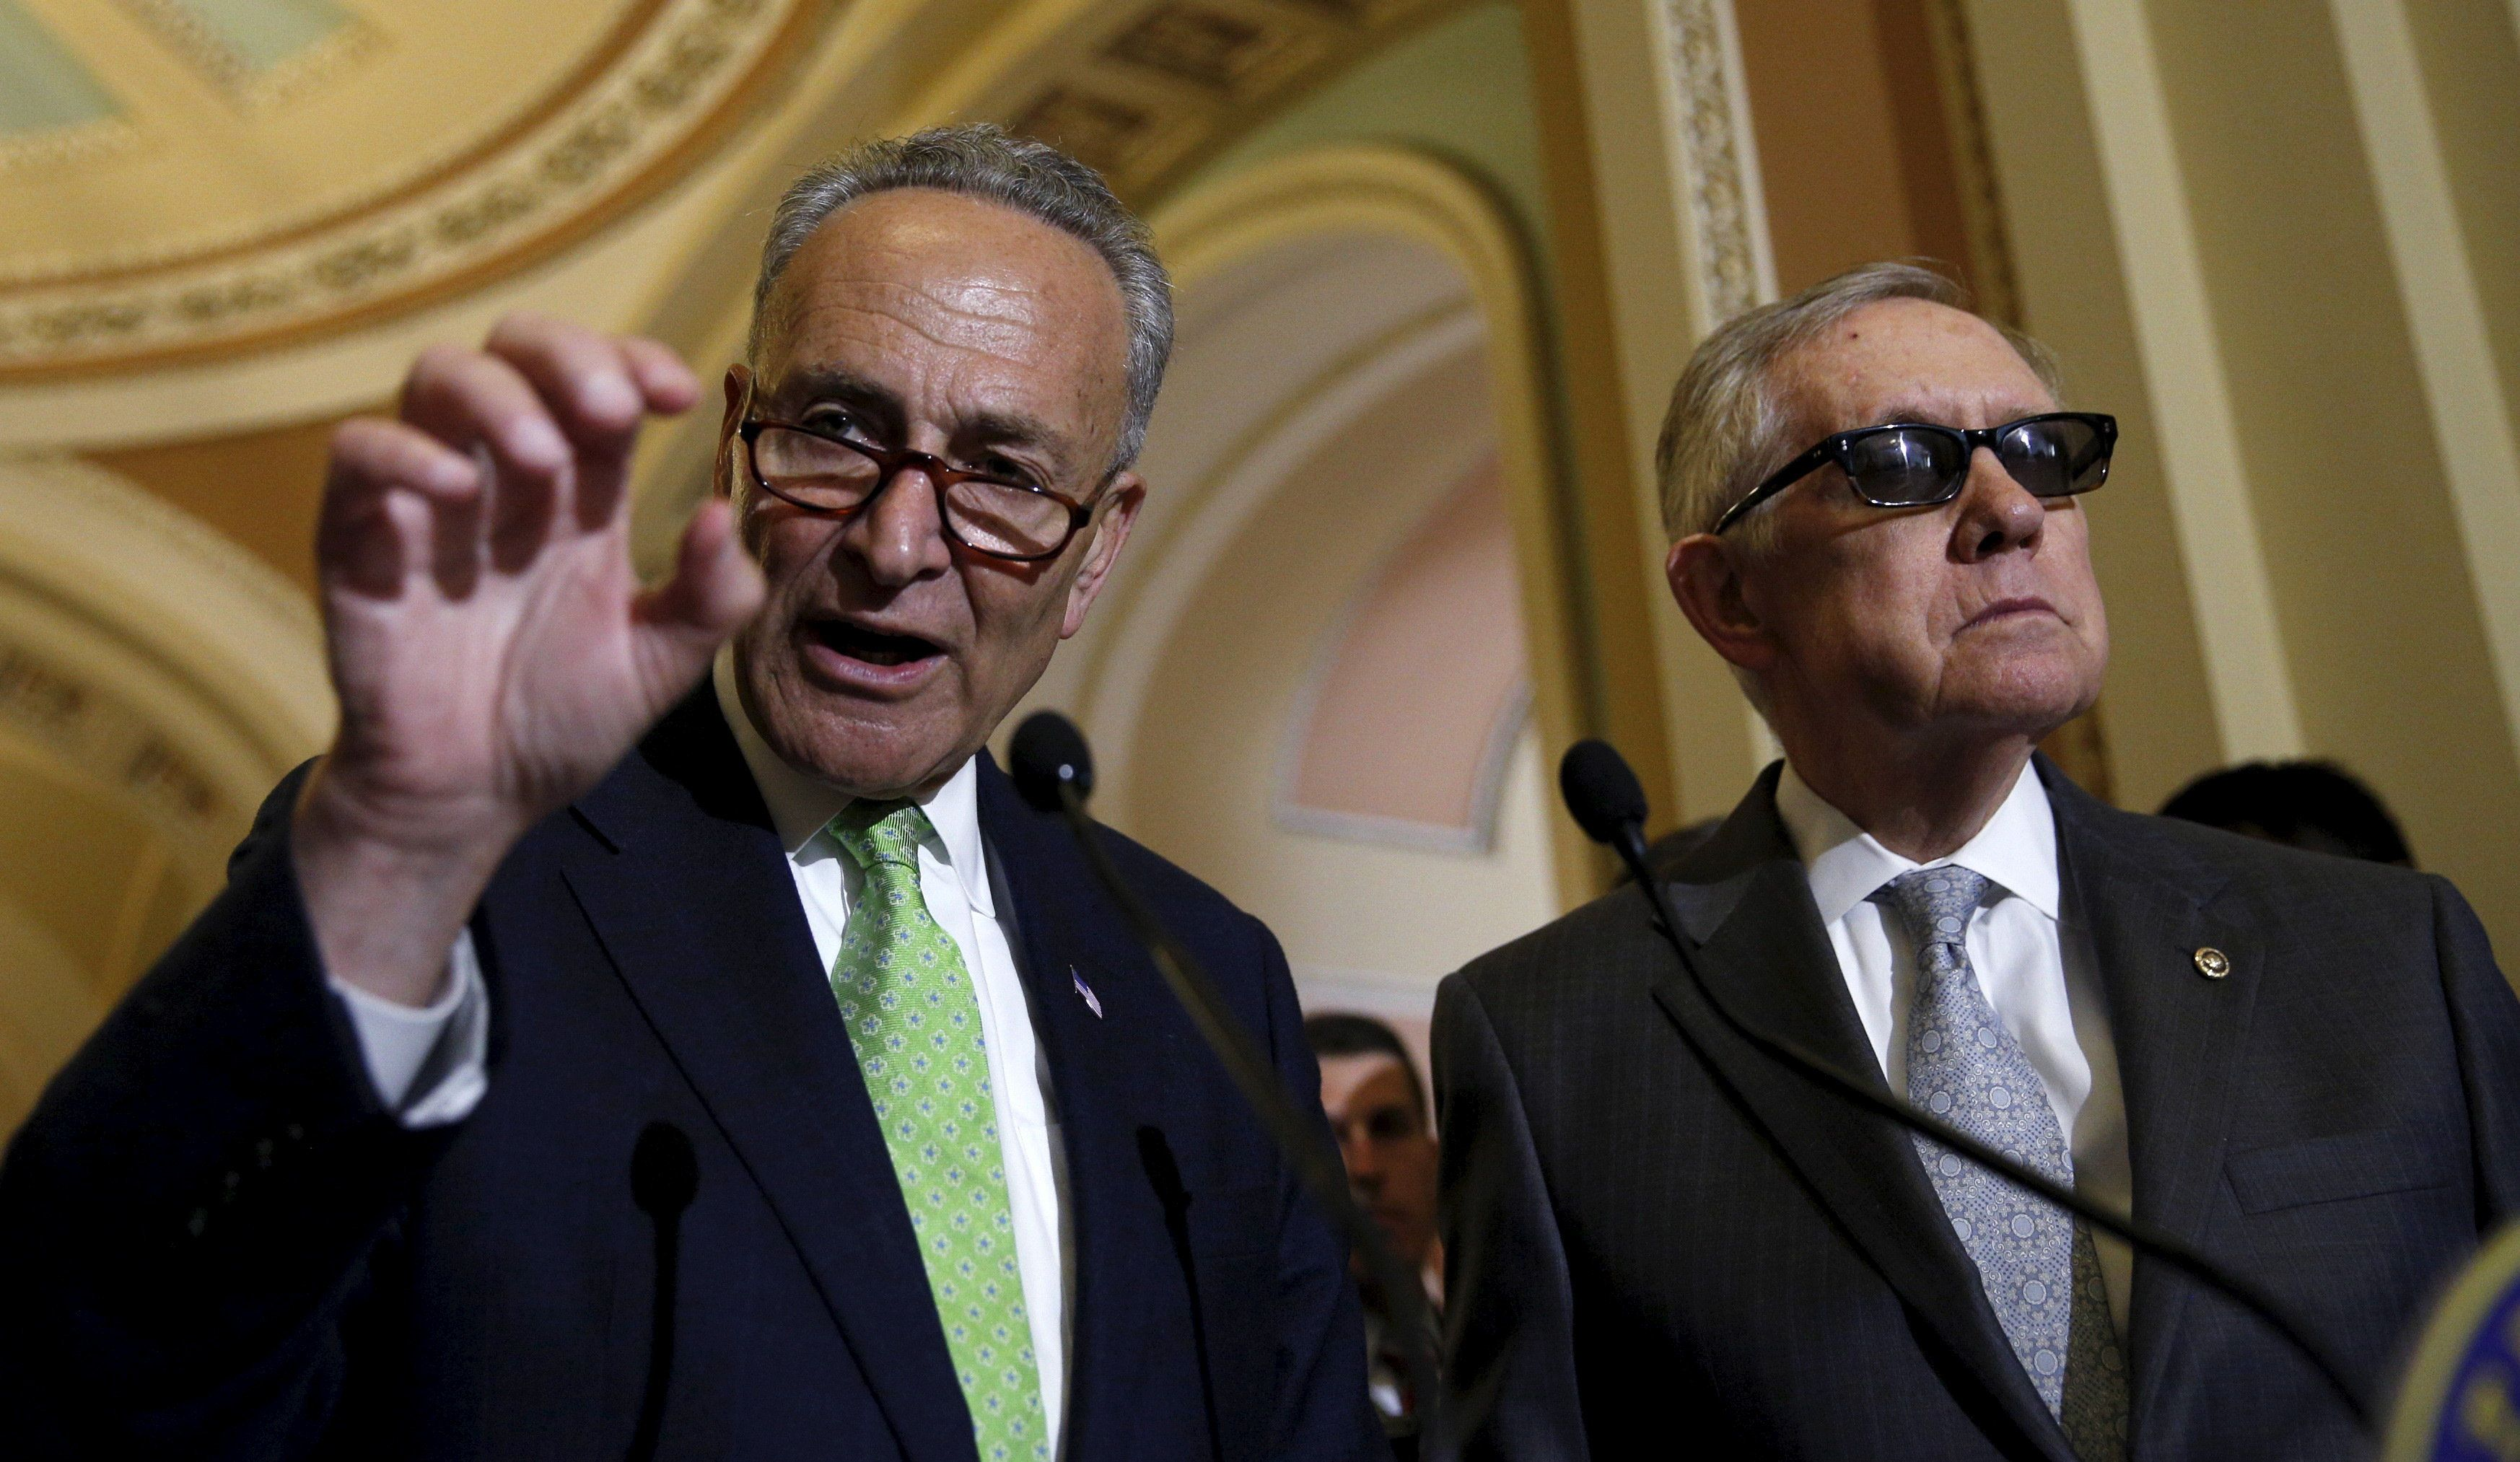 Senator Chuck Schumer  (D-NY) speaks to reporters as Senate Minority Leader Harry Reid stands beside him following the party's weekly policy lunch at the U.S. Capitol in Washington May 5, 2015. REUTERS/Kevin Lamarque